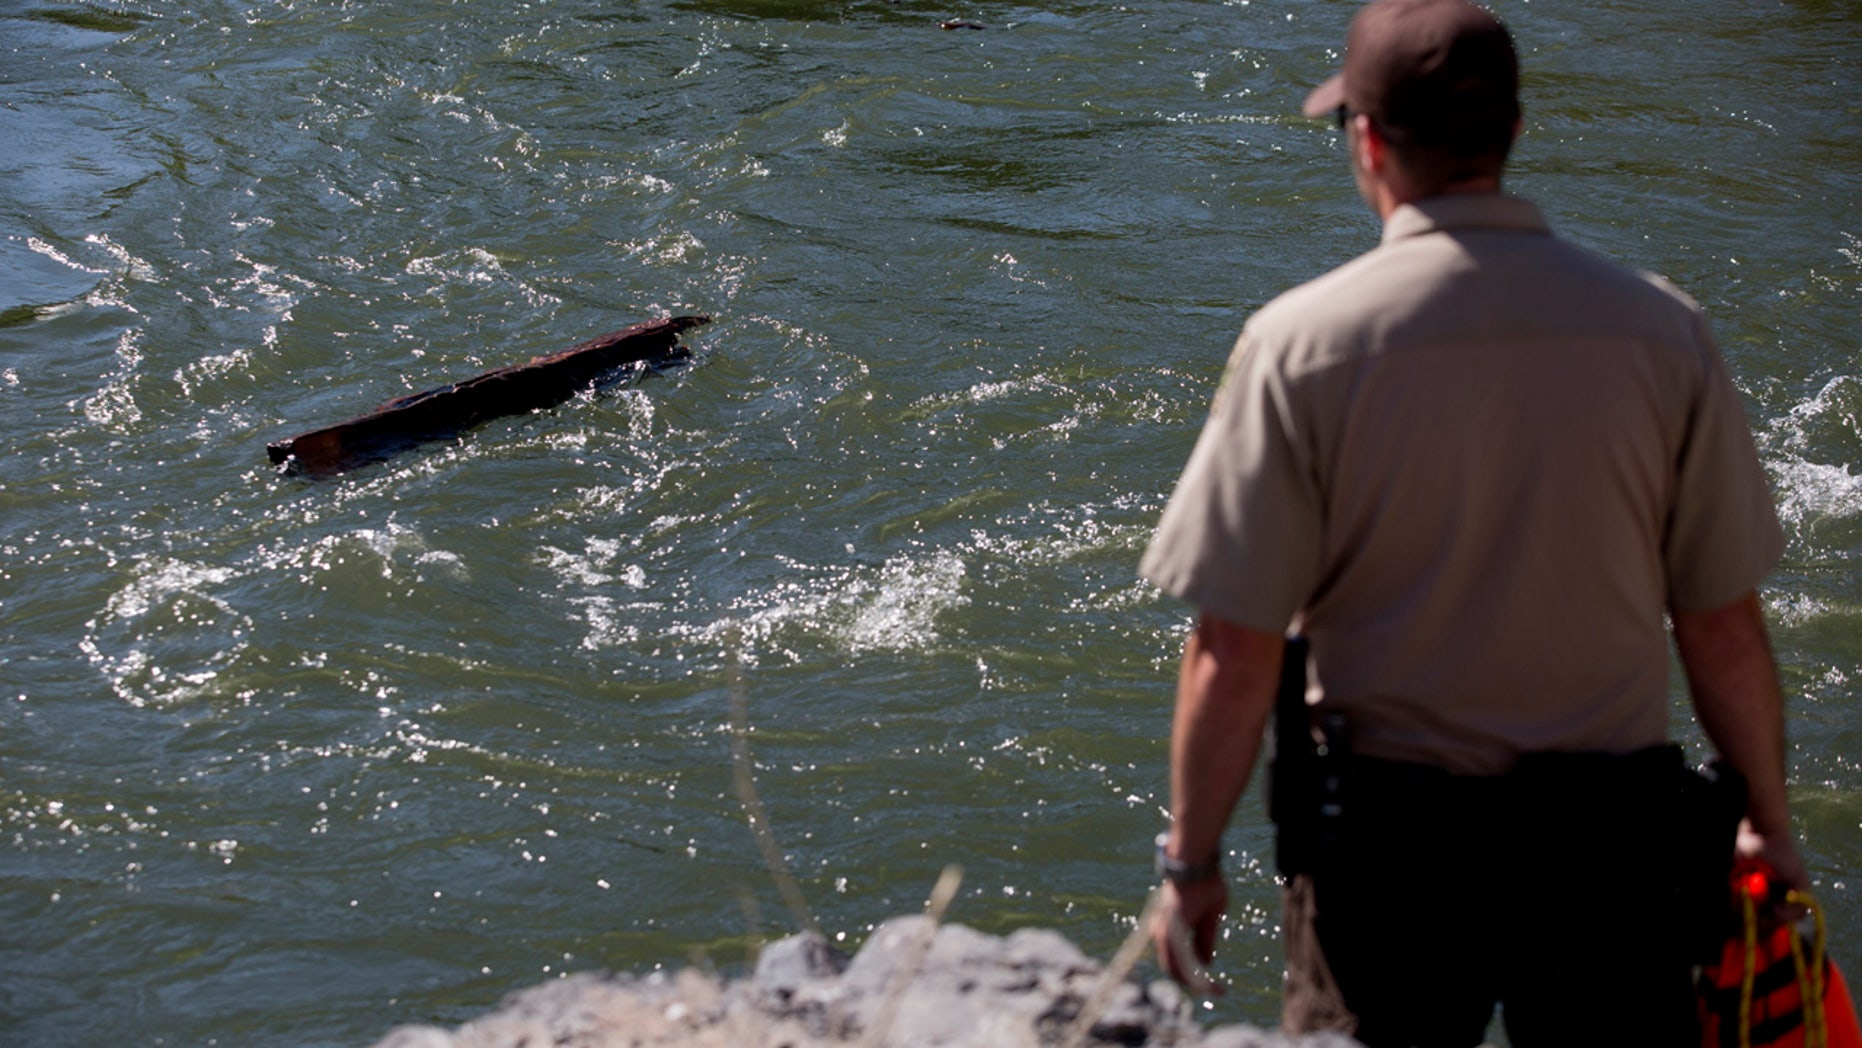 In this Monday, May 29, 2017 photo, police, fire and search and rescue officials respond to a scene along the Provo River near Provo, Utah.